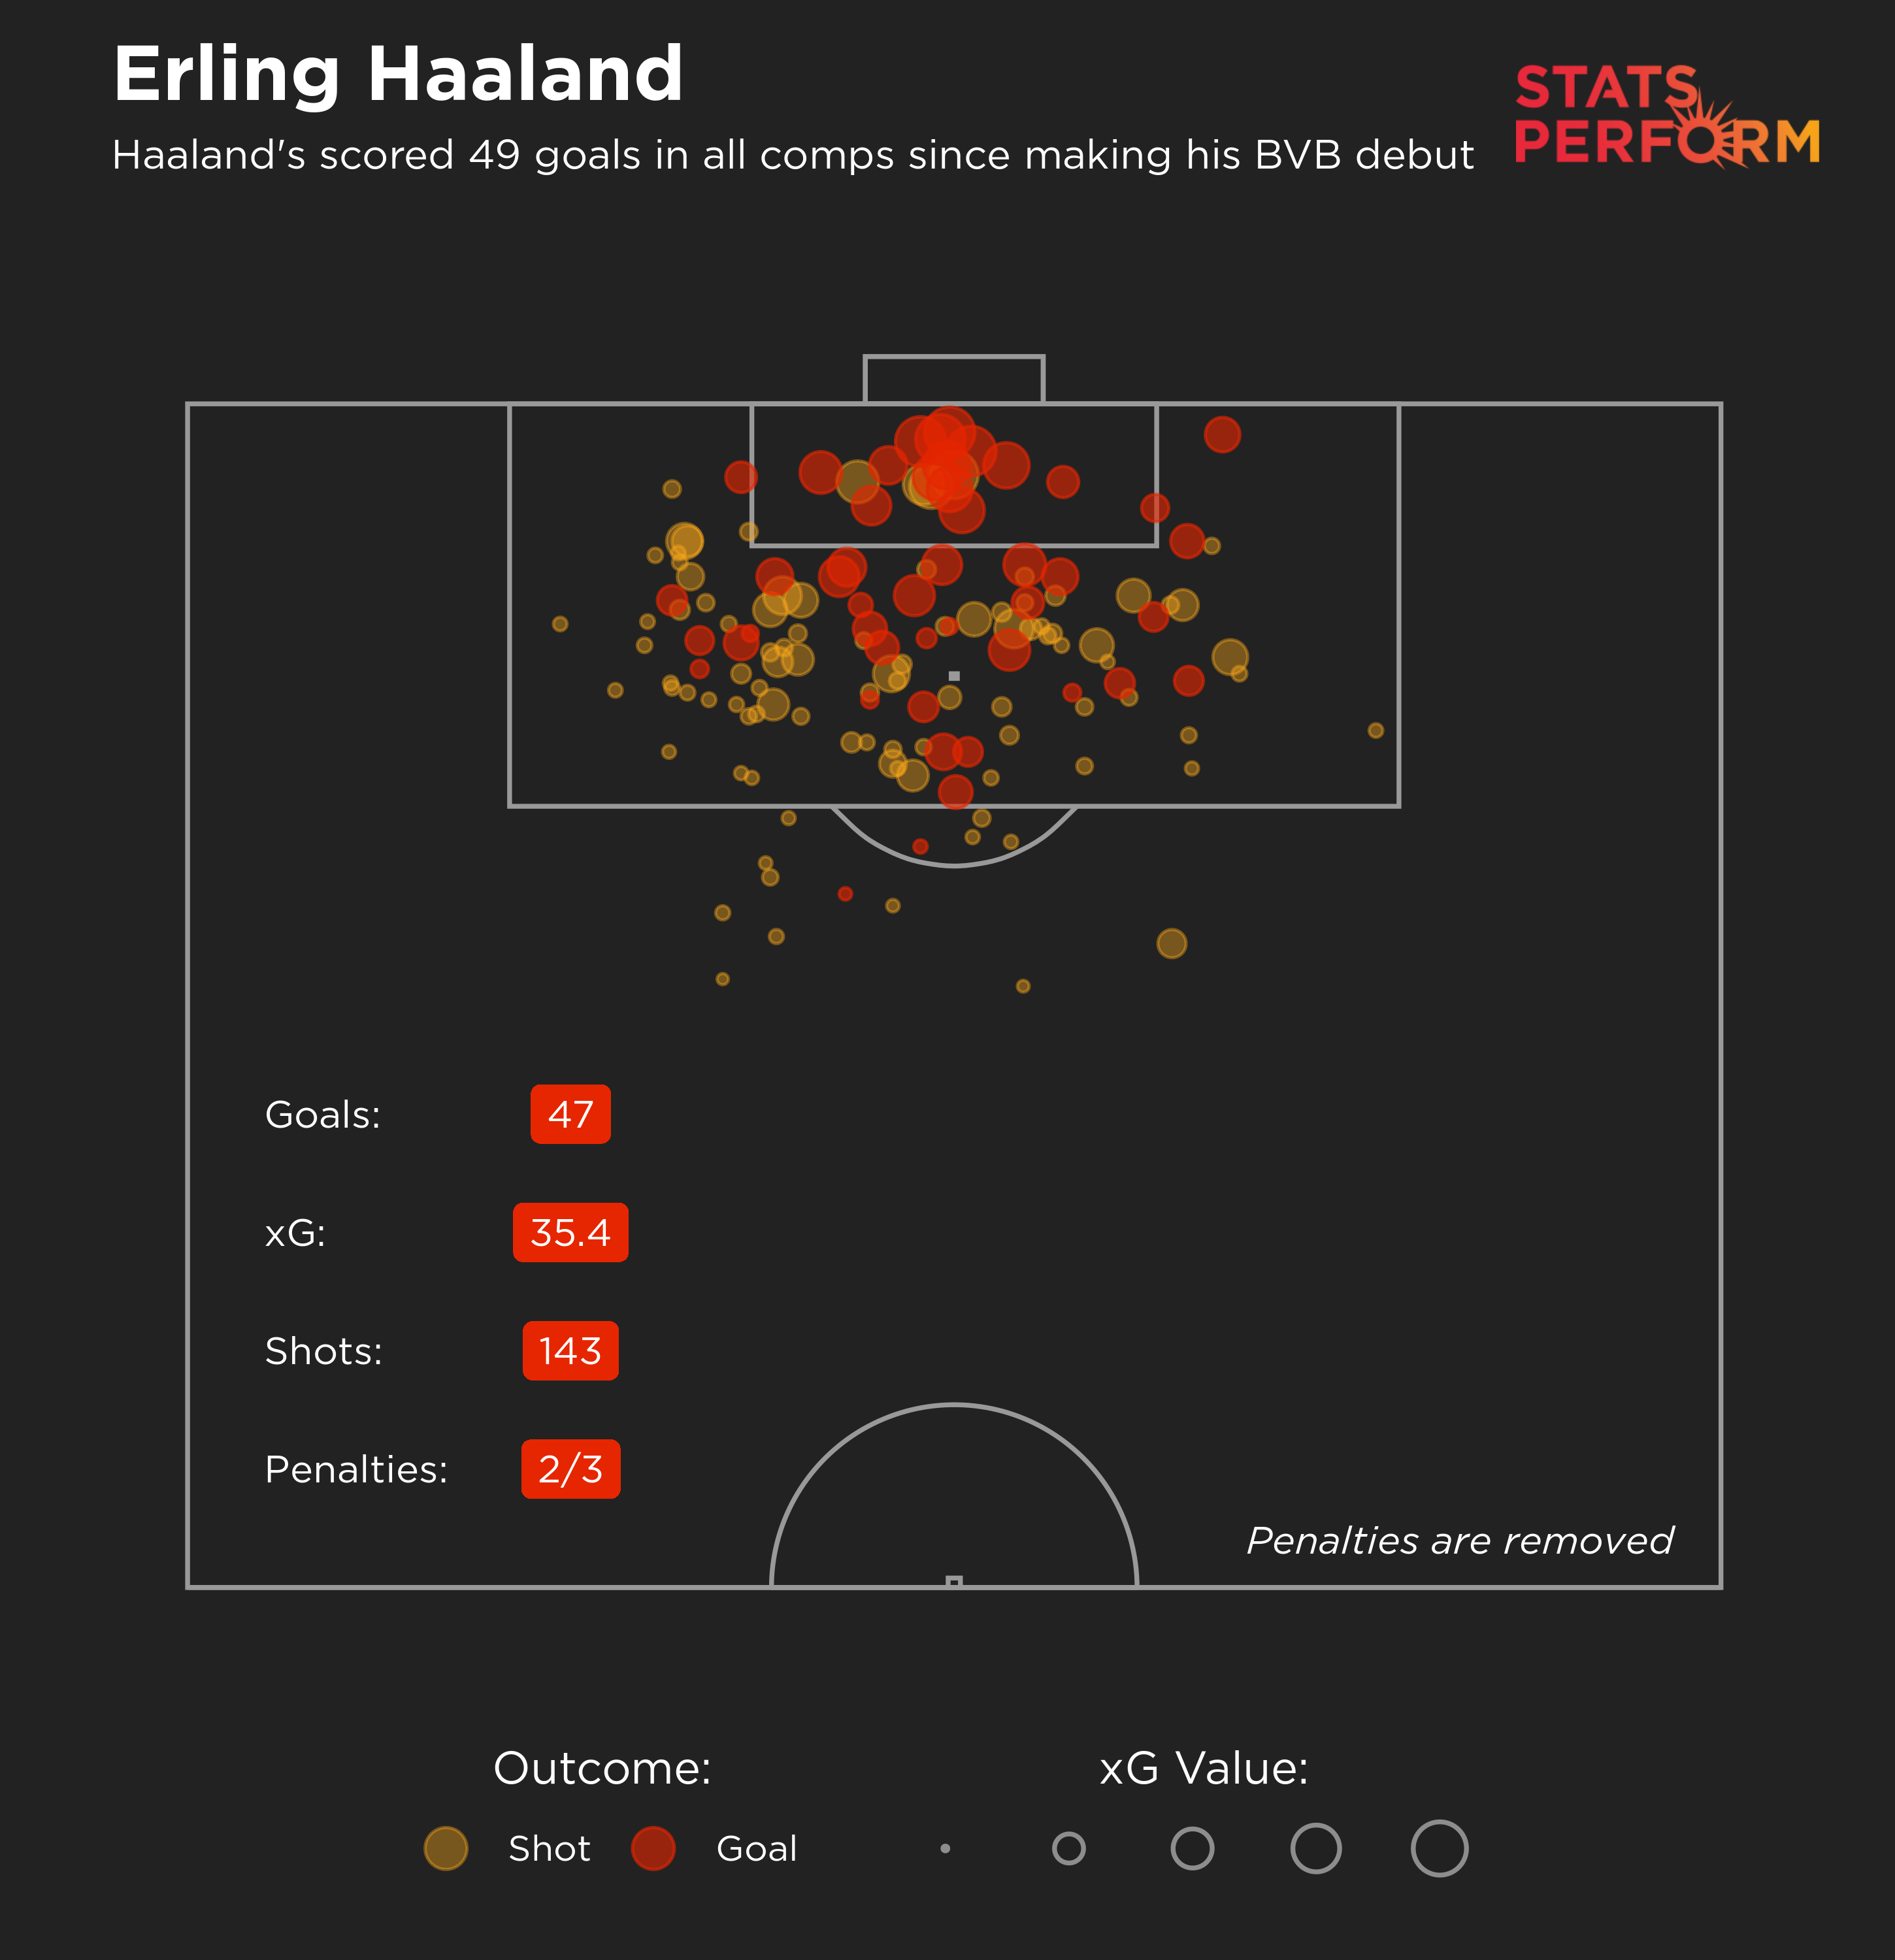 Haaland's scored 49 goals in all comps since making his BVB debut